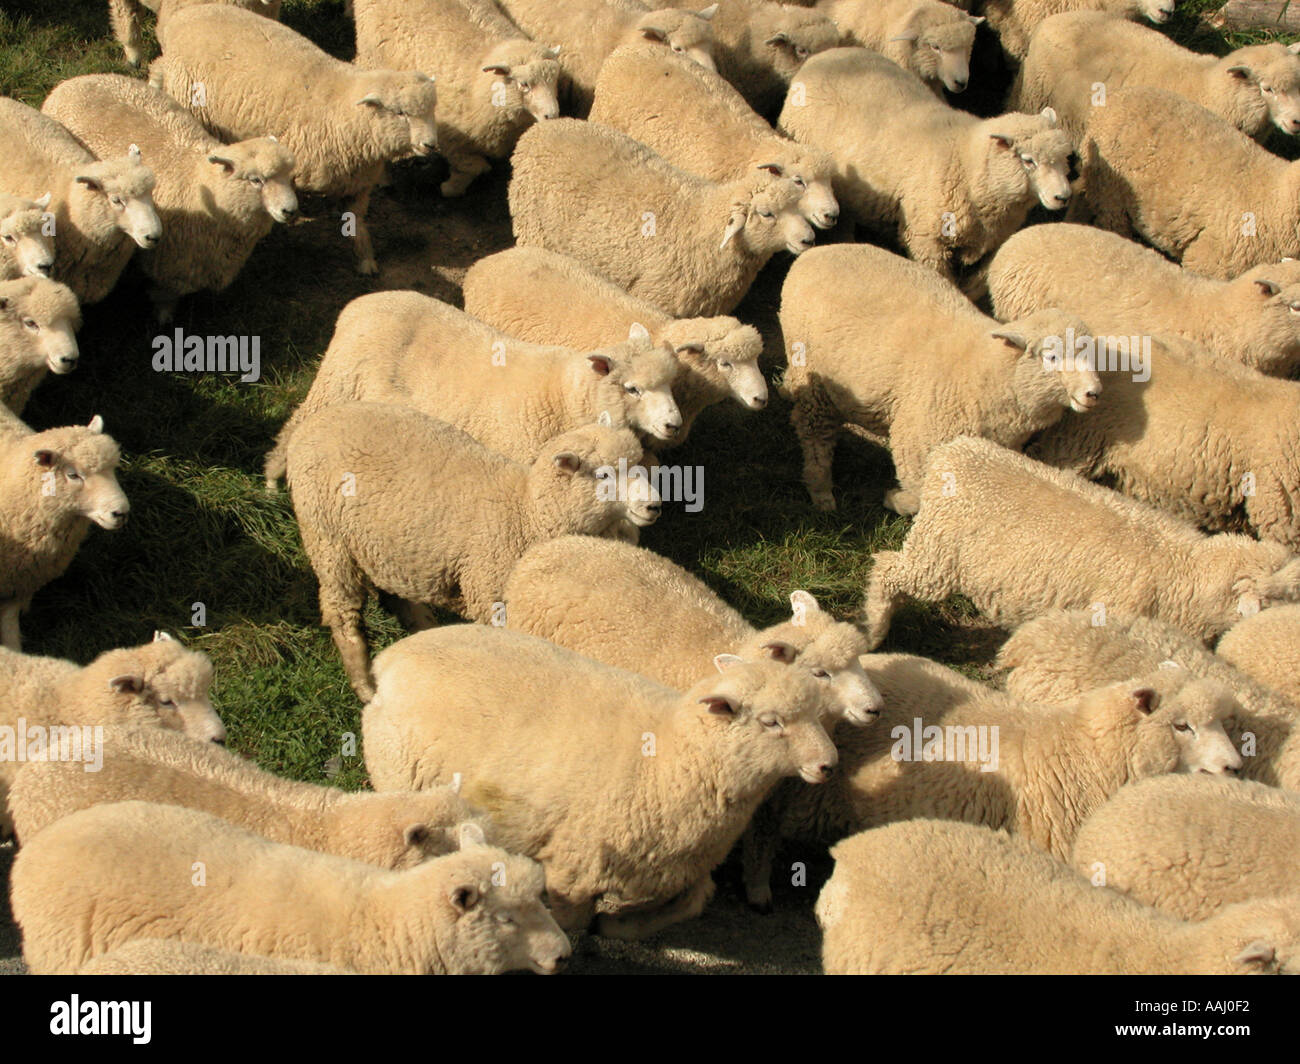 rounding up a flock of sheep new zealand - Stock Image